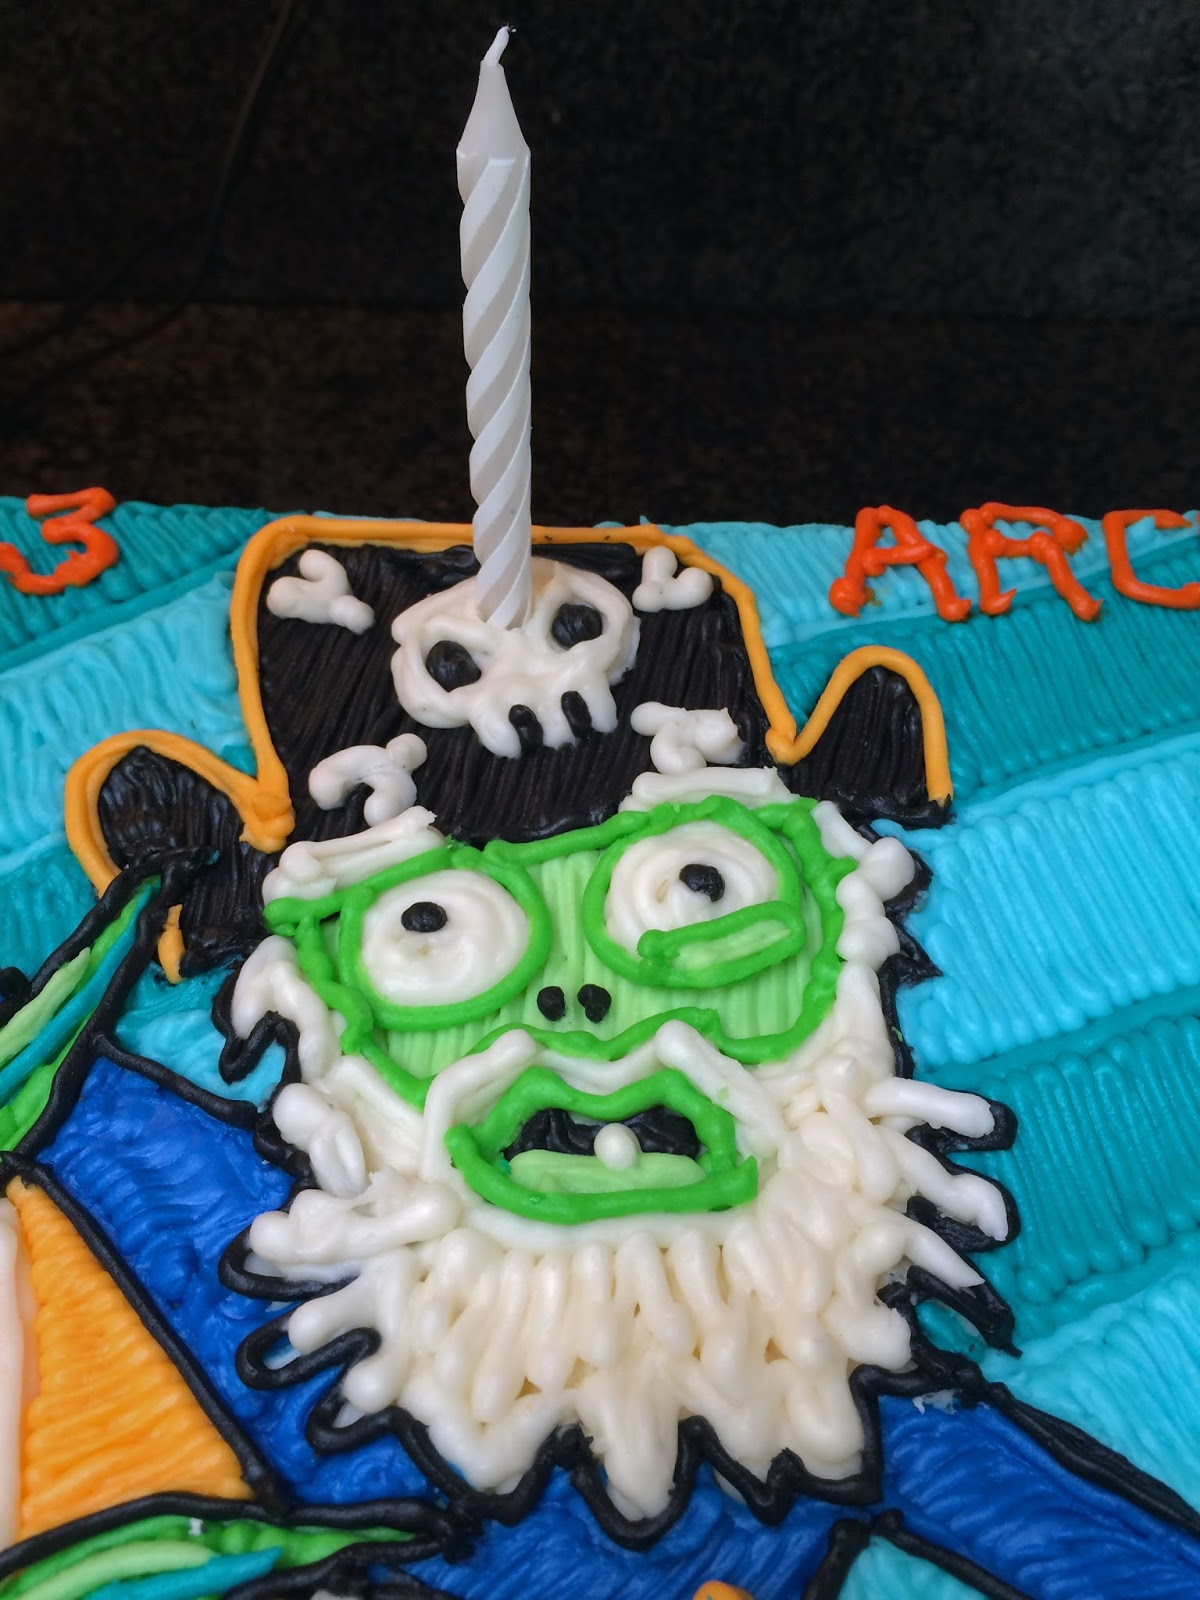 Agent Orange And The Pirate Zombie From Plants Vs Zombies 2 On A Birthday Cake With Strategically Placed Candle